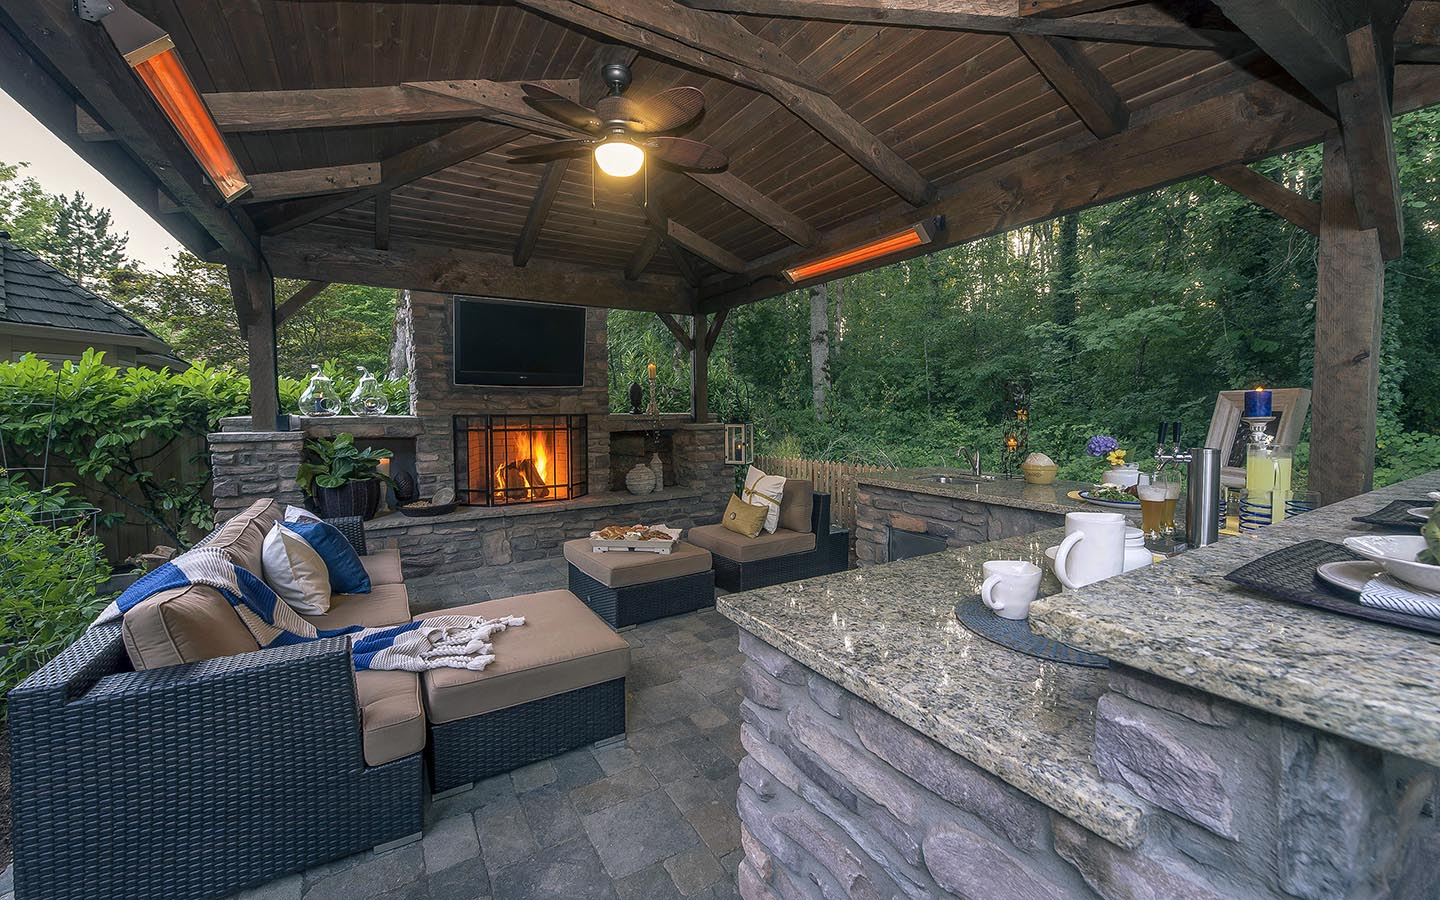 Outdoor Living Room Kitchen Paradise Restored Landscaping